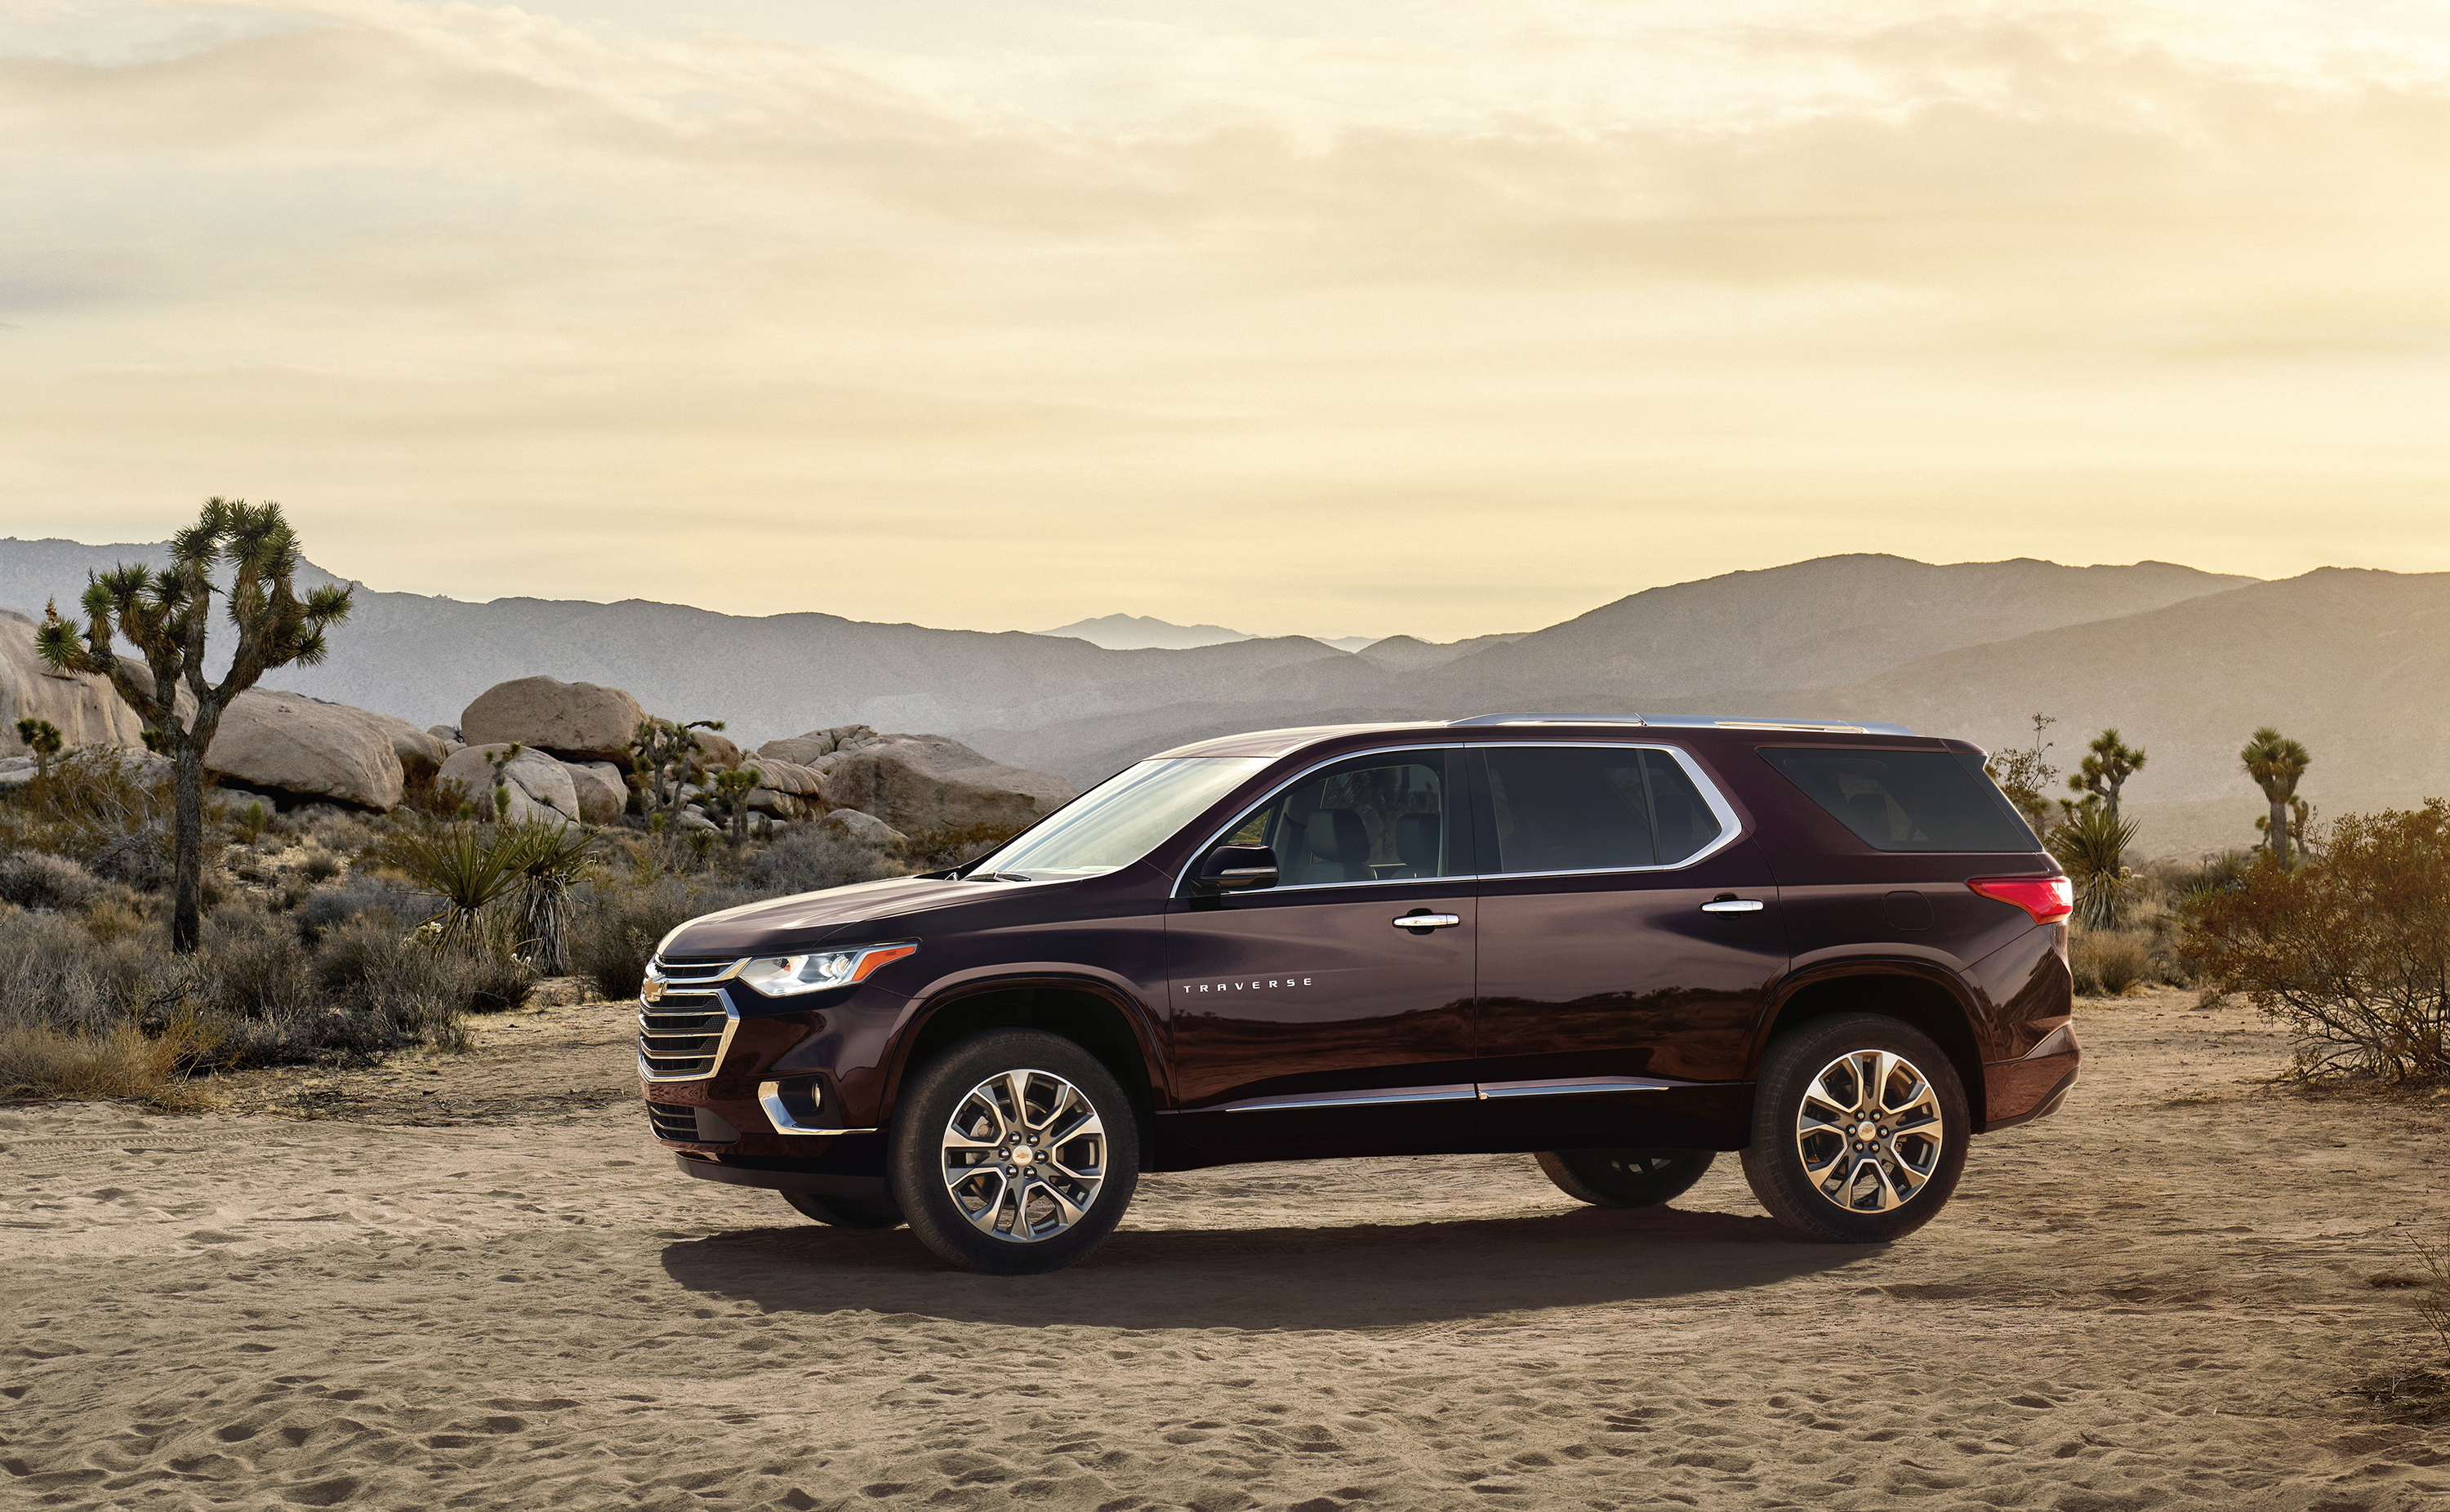 2018-Chevrolet-Traverse-001 Interesting Info About Chevy Traverse Ltz with Fabulous Pictures Cars Review